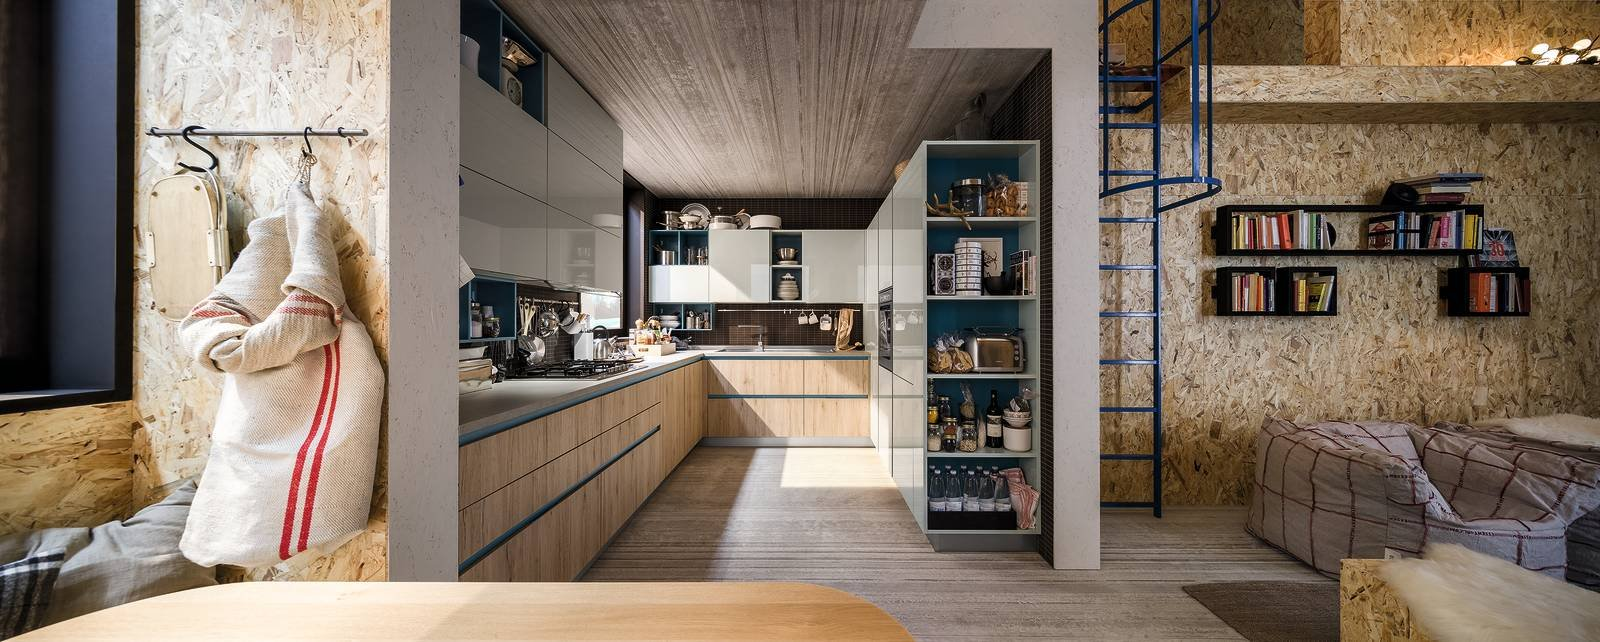 Stunning Cucine Ad U Ideas - Home Design Ideas 2017 - emilybennett.us